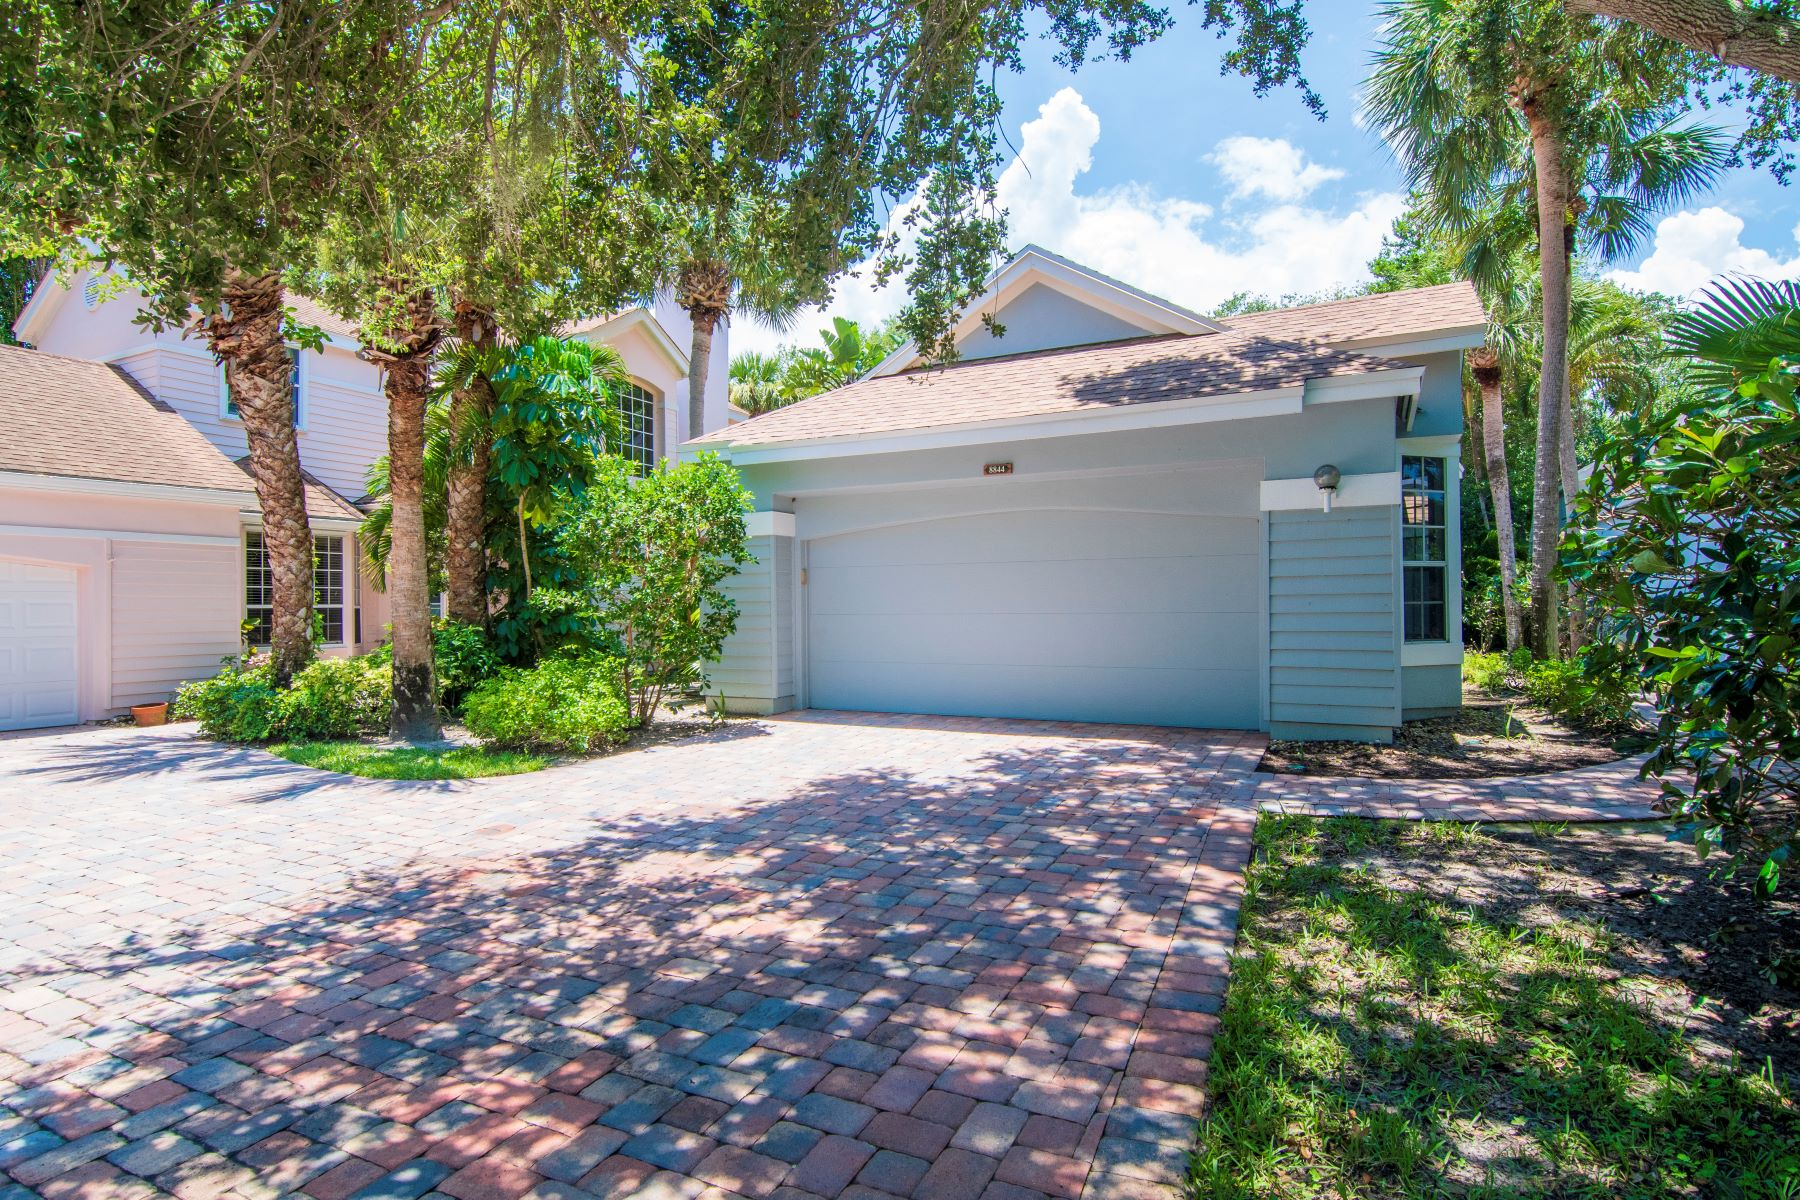 Property for Sale at 8844 Lakeside Circle, Vero Beach, FL 8844 Lakeside Circle Vero Beach, Florida 32963 United States